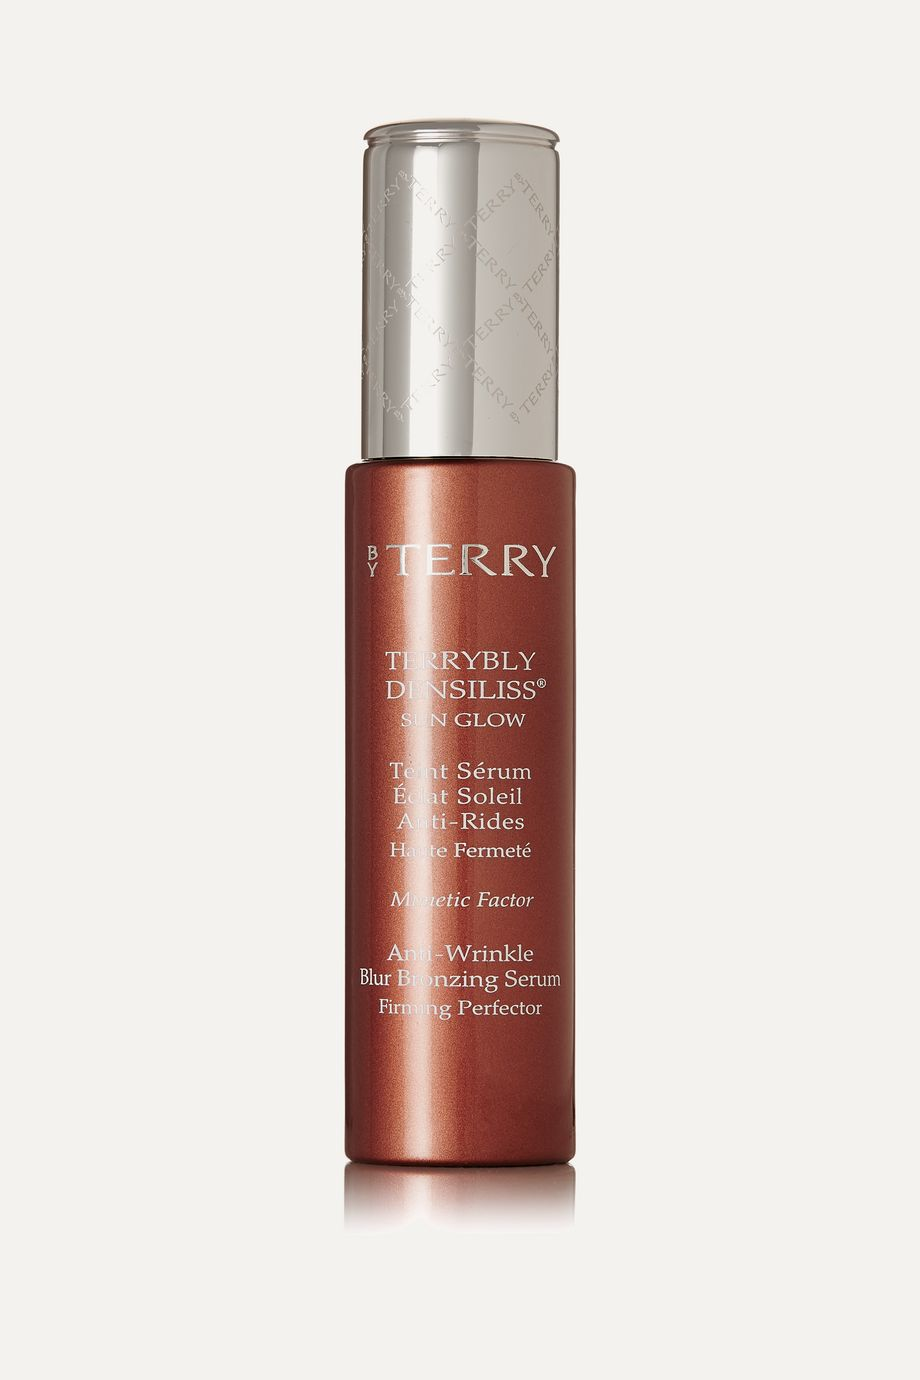 BY TERRY Terrybly Densiliss® Sun Glow - Sun Fair 1, 30ml